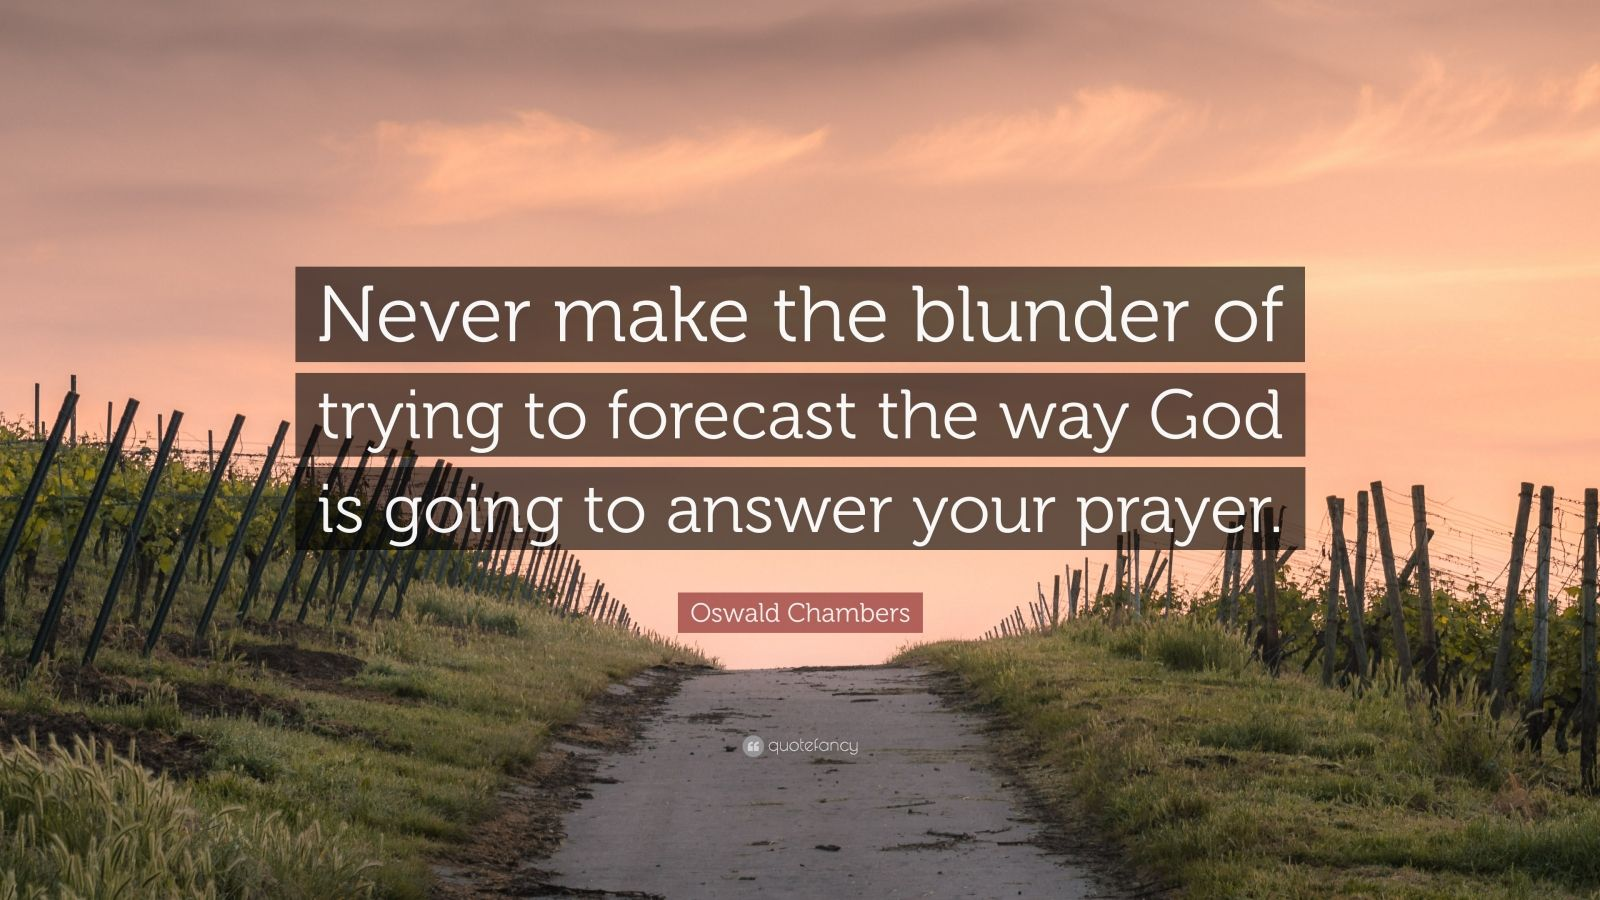 """Oswald Chambers Quote: """"Never make the blunder of trying to forecast the way God is going to answer your prayer."""""""